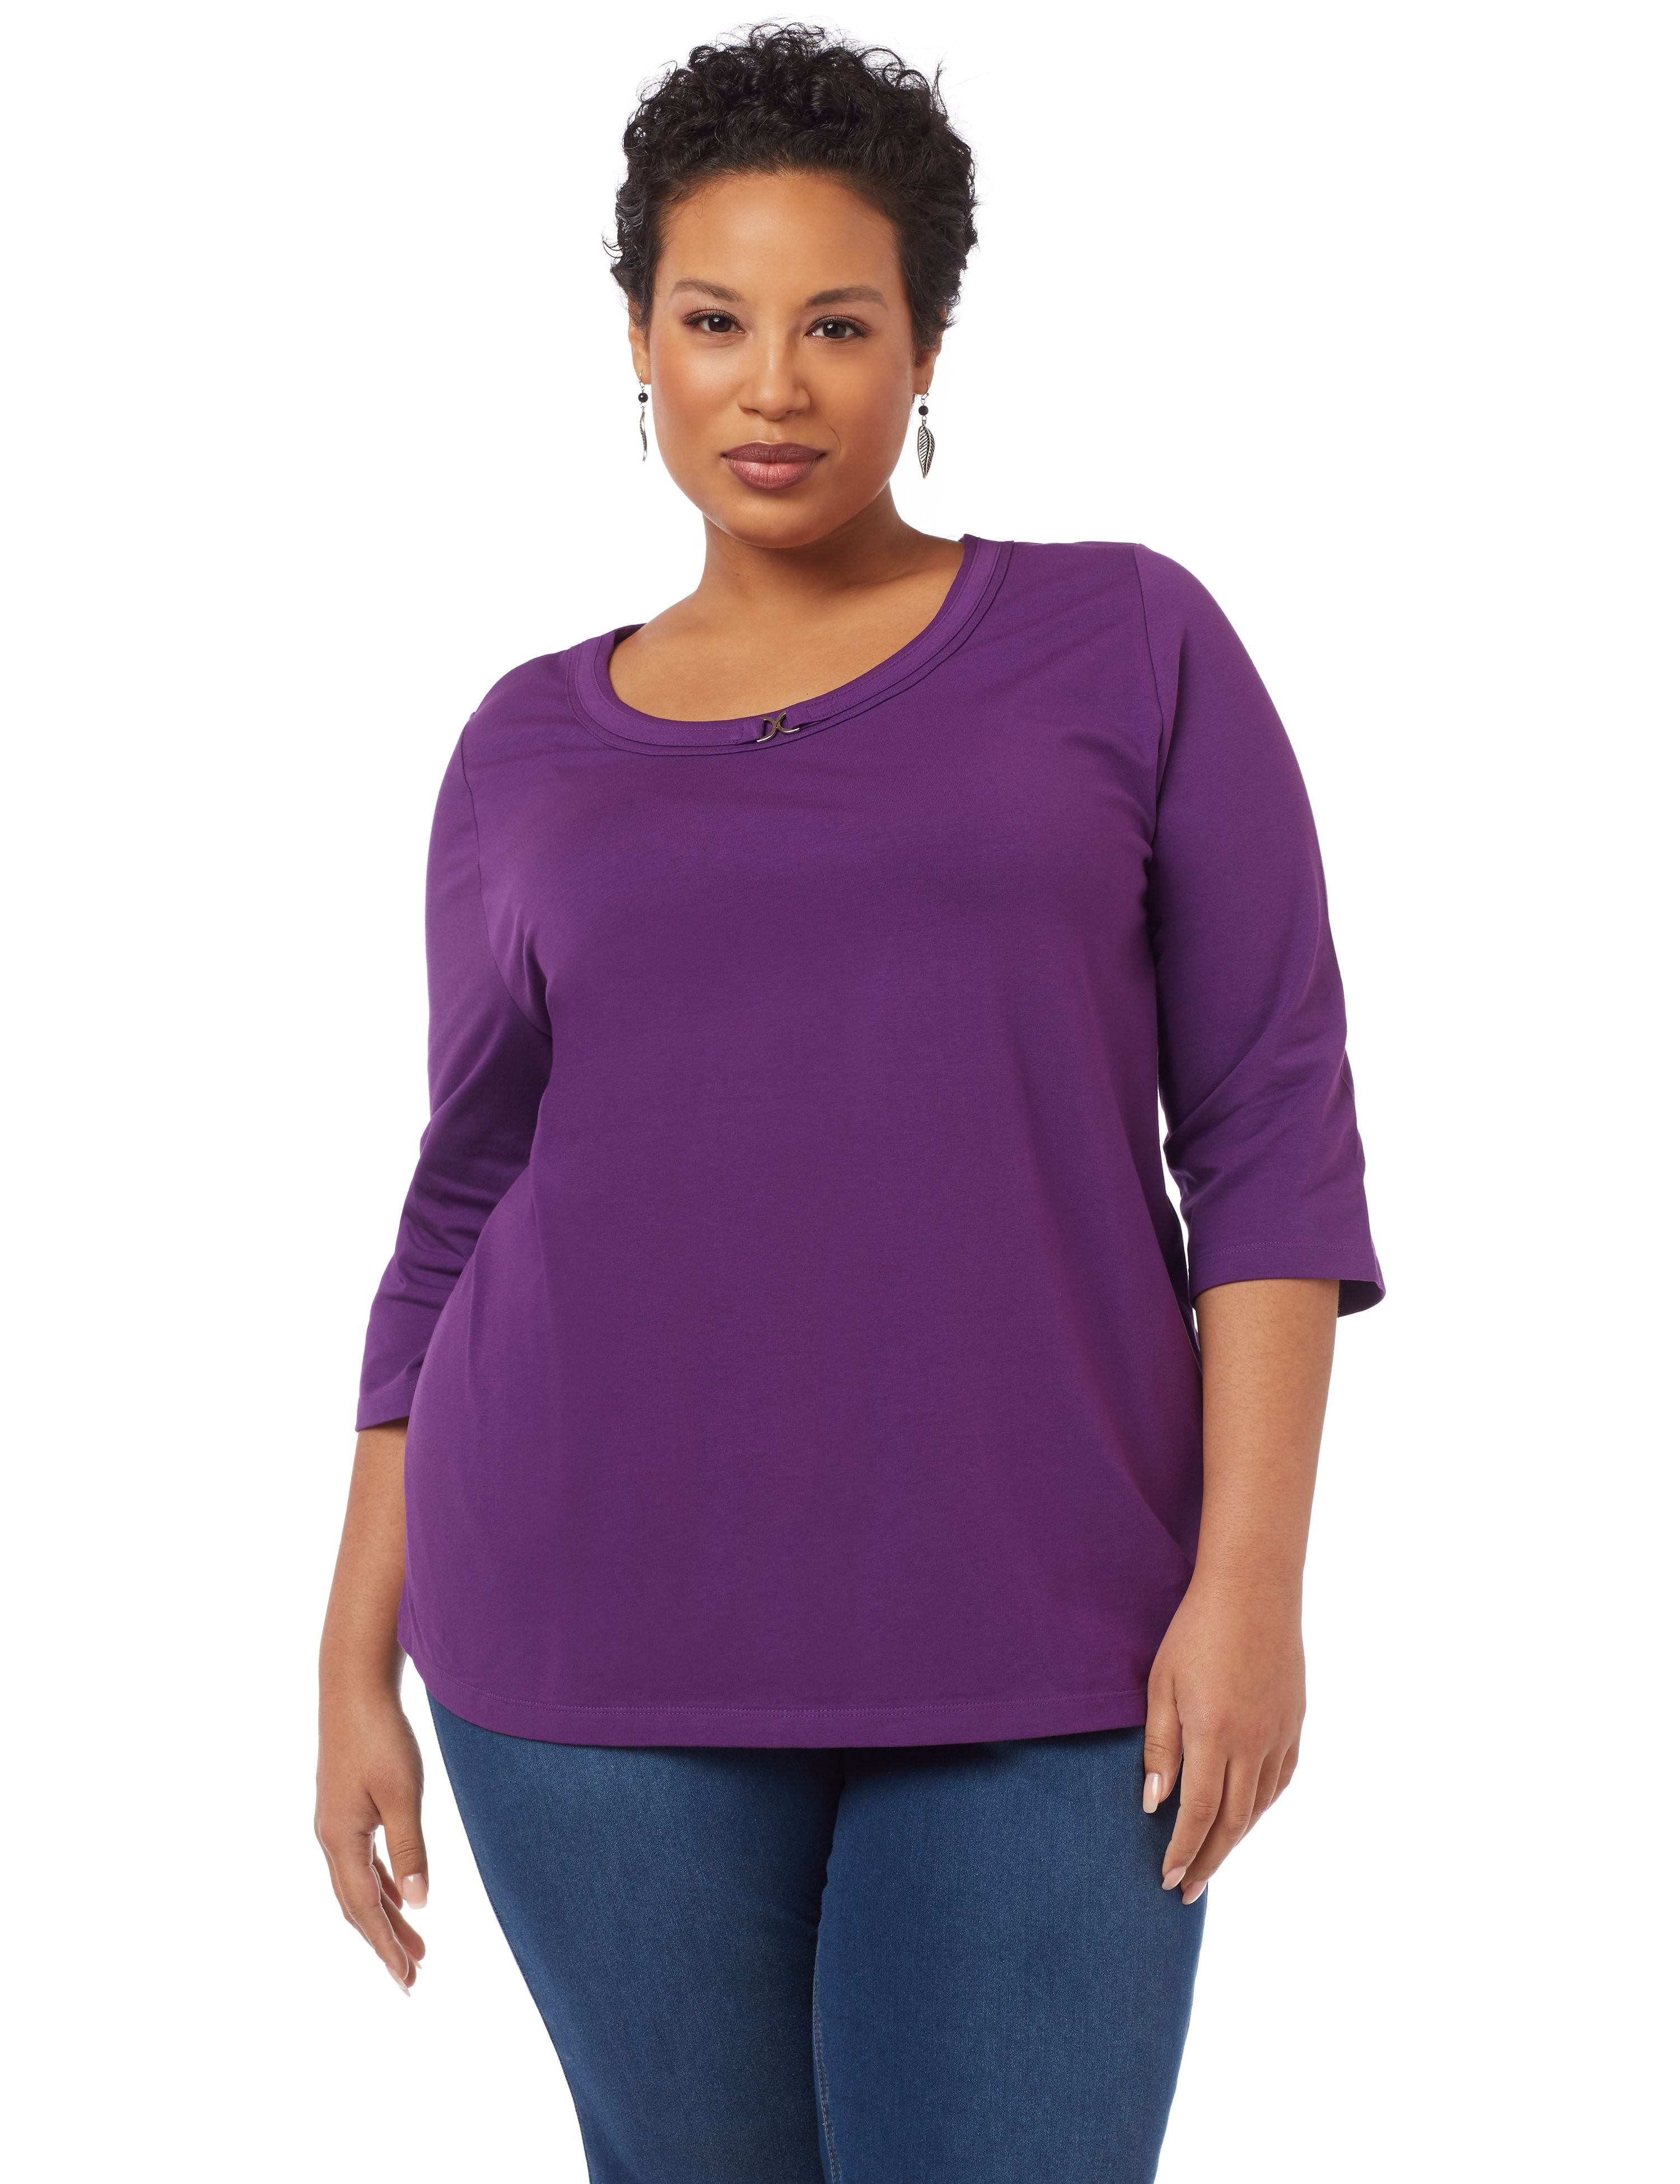 Suprema Accent Tee 1087926-3QSlv Scoop Neck W/ CF Hard MP-300098057